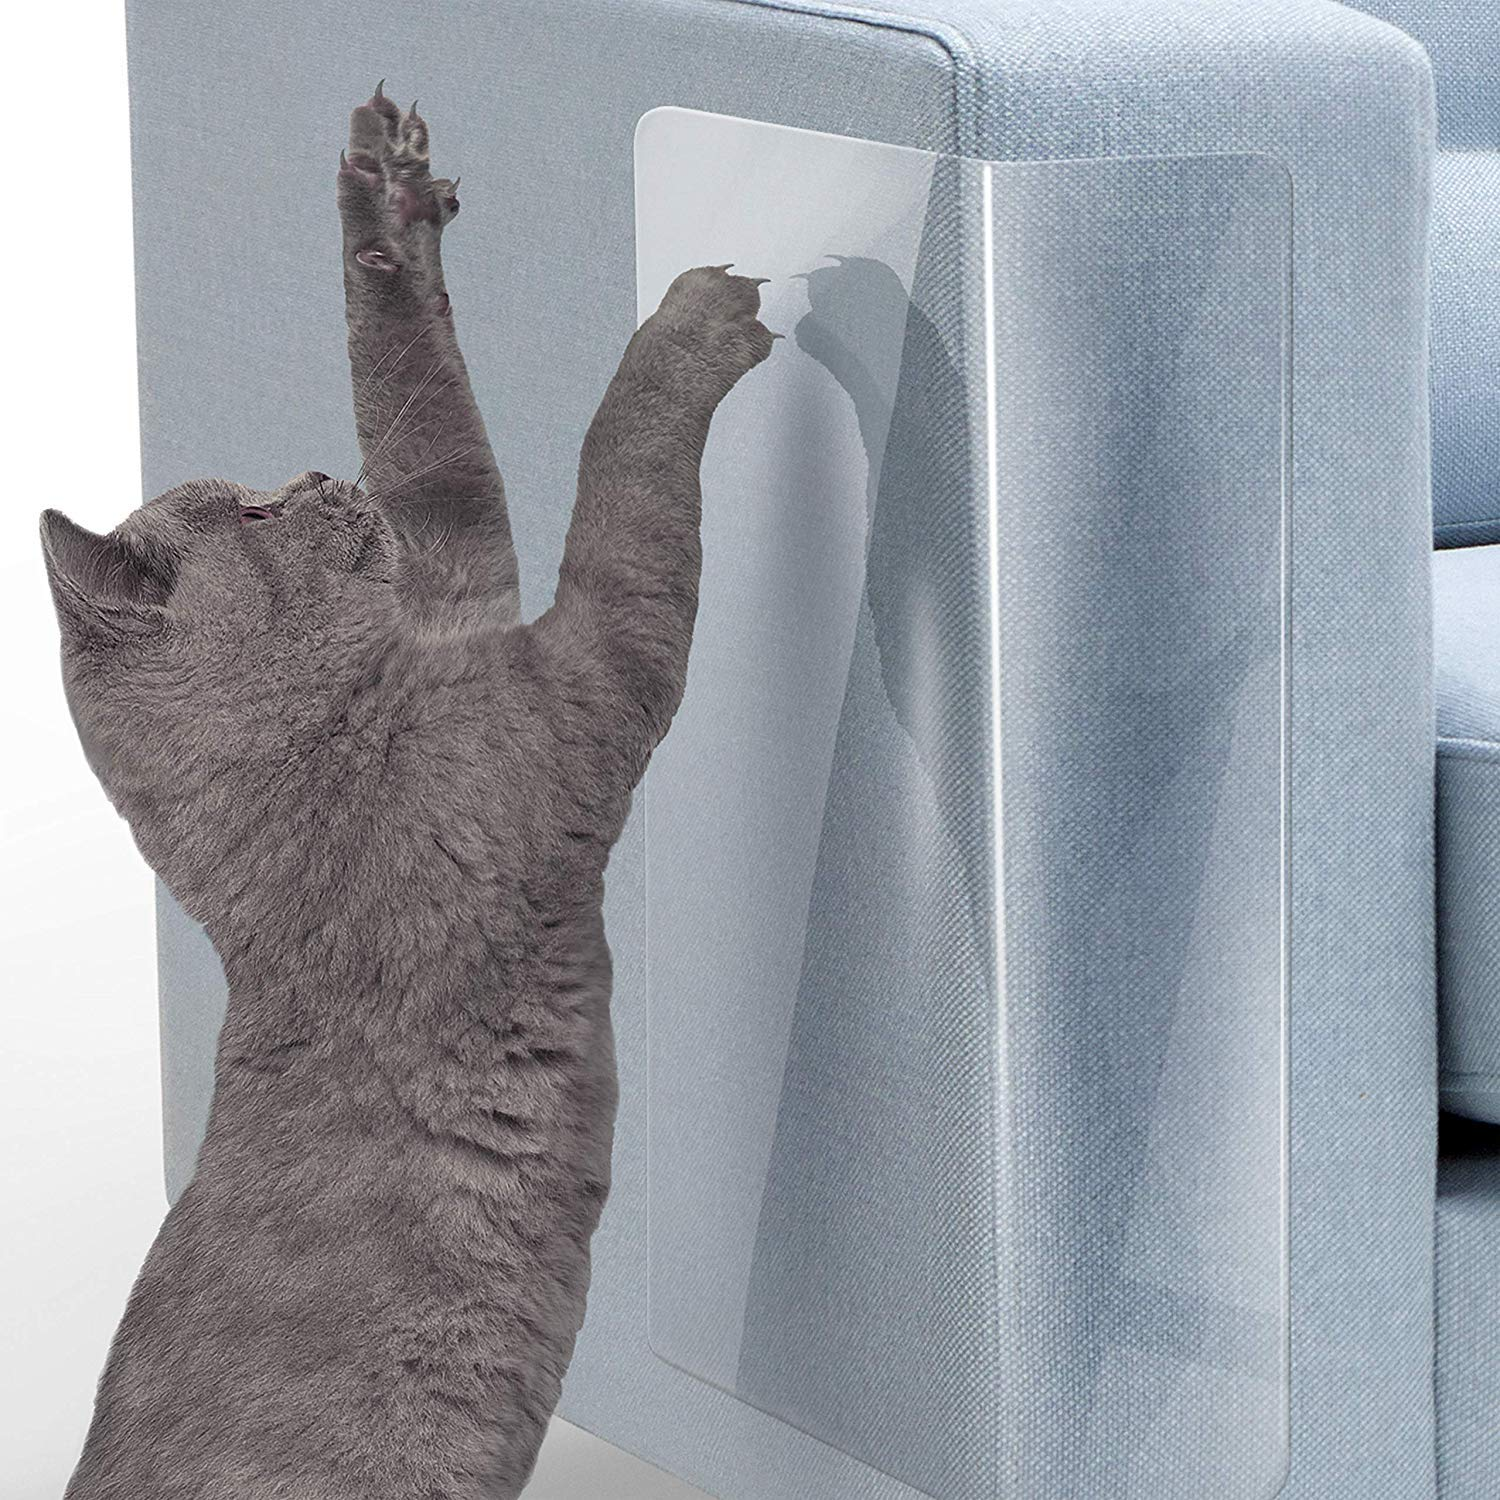 Door 18L x 8W 6 Pack Clear Cat Dog Claw Guards Self-Adhesive Pads,Cat Scratch Furniture Protector Pad Deterrent,Cover to Protect The Upholstery LMLMD Pet Couch Protector Walls,Car Seat